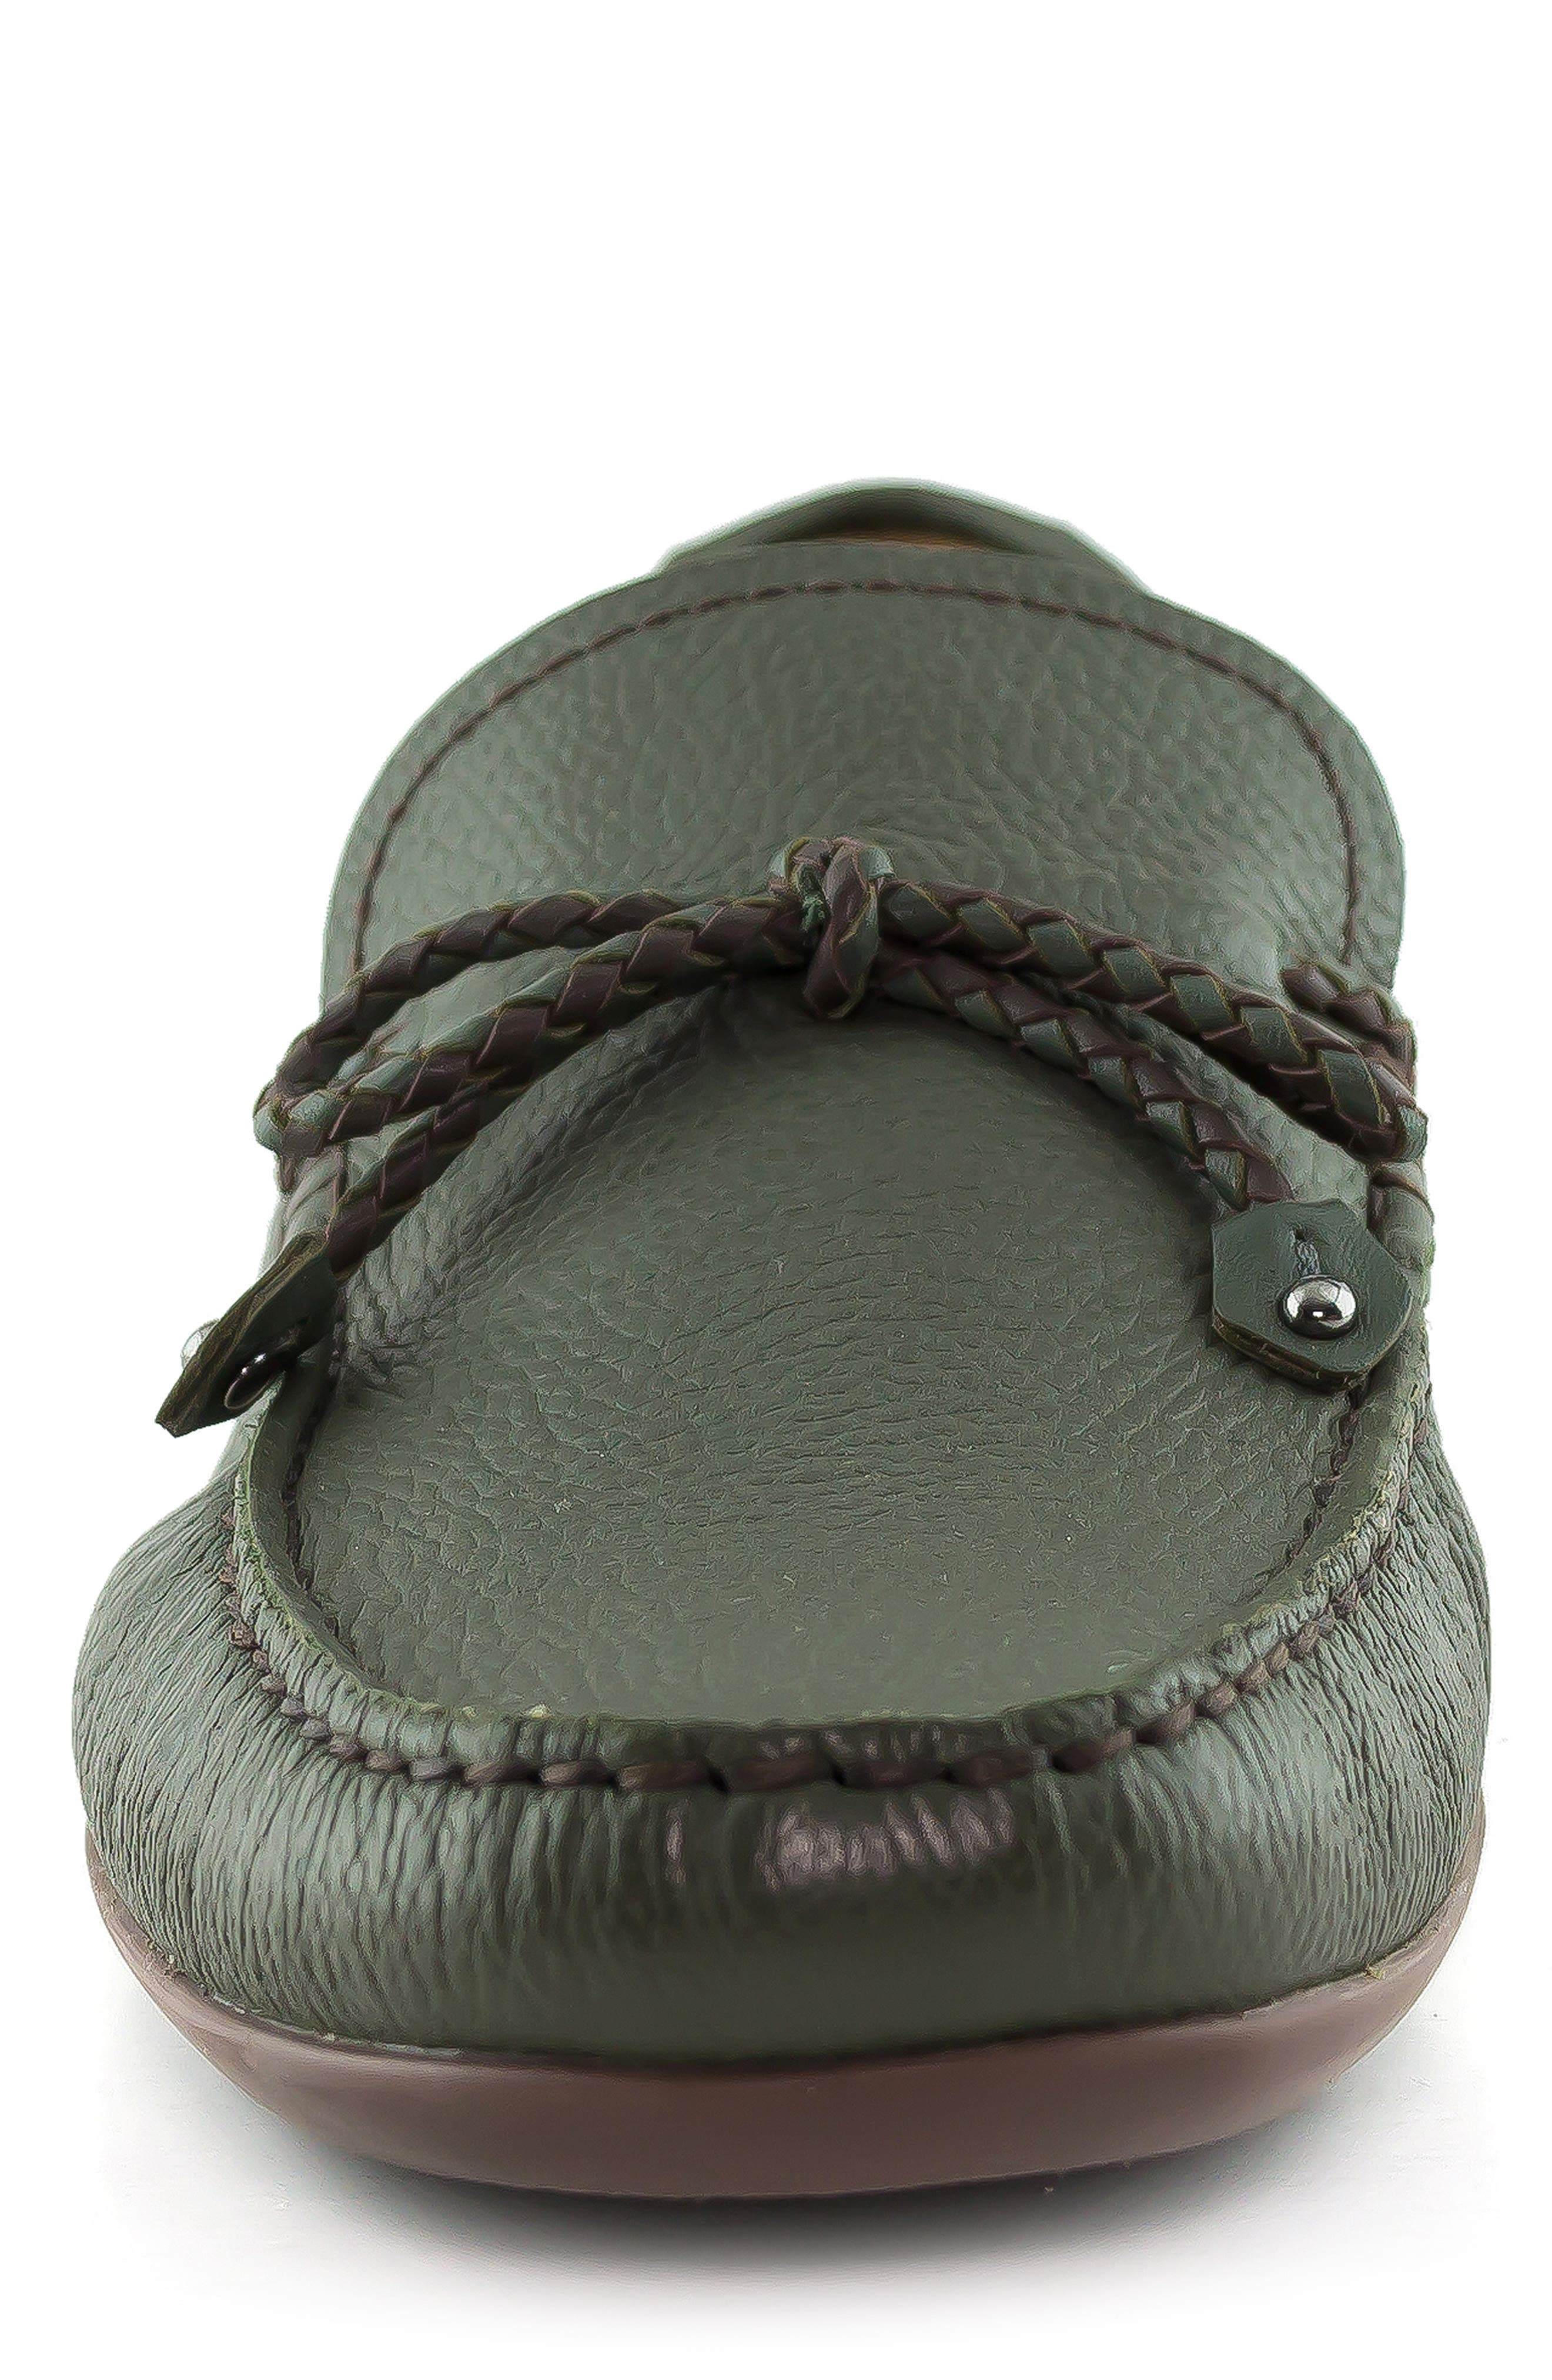 'Cypress Hill' Driving Shoe,                             Alternate thumbnail 4, color,                             315